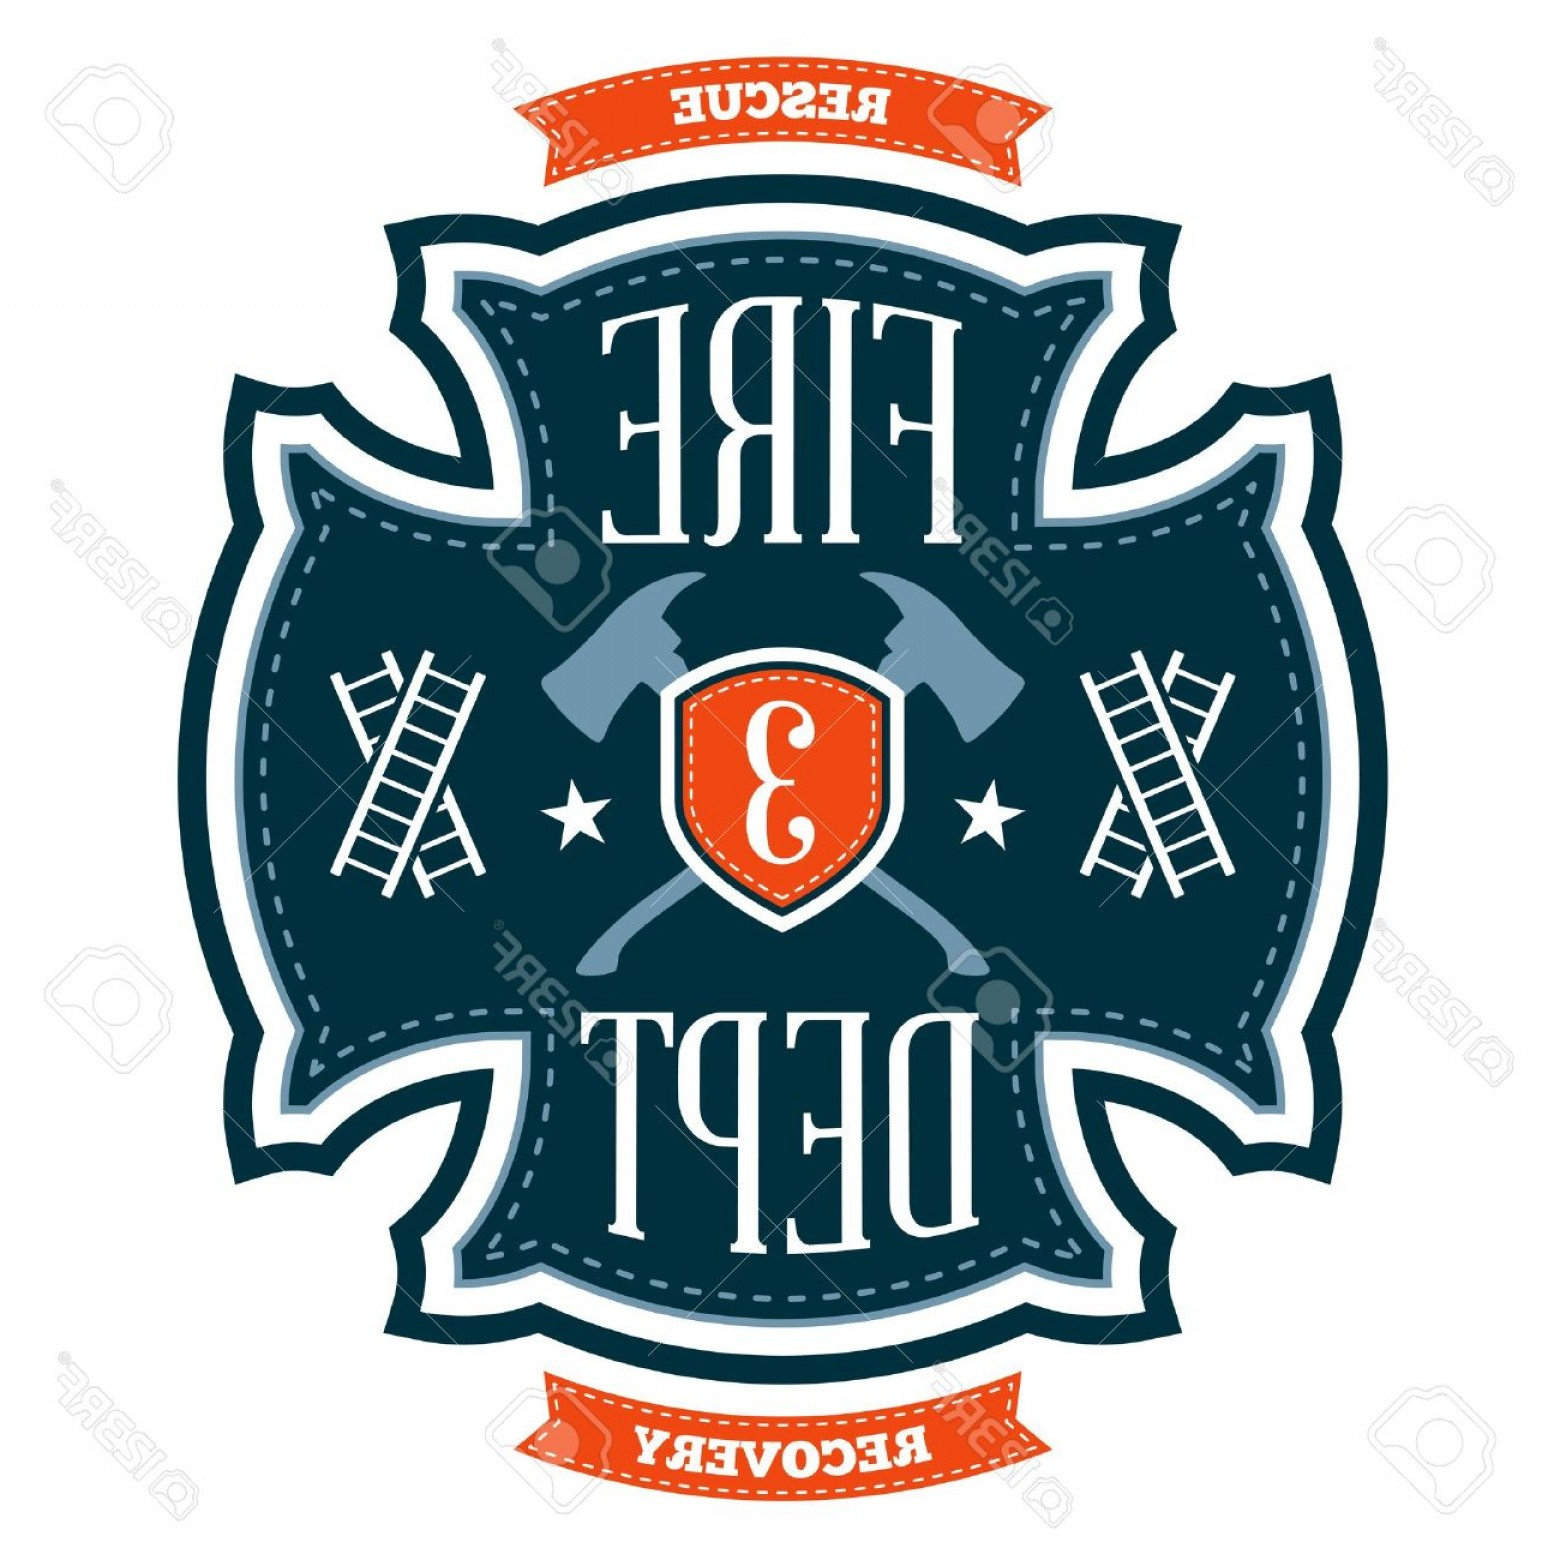 Fire Maltese Vector: Photofire Department Emblem Crest With Crossed Axes